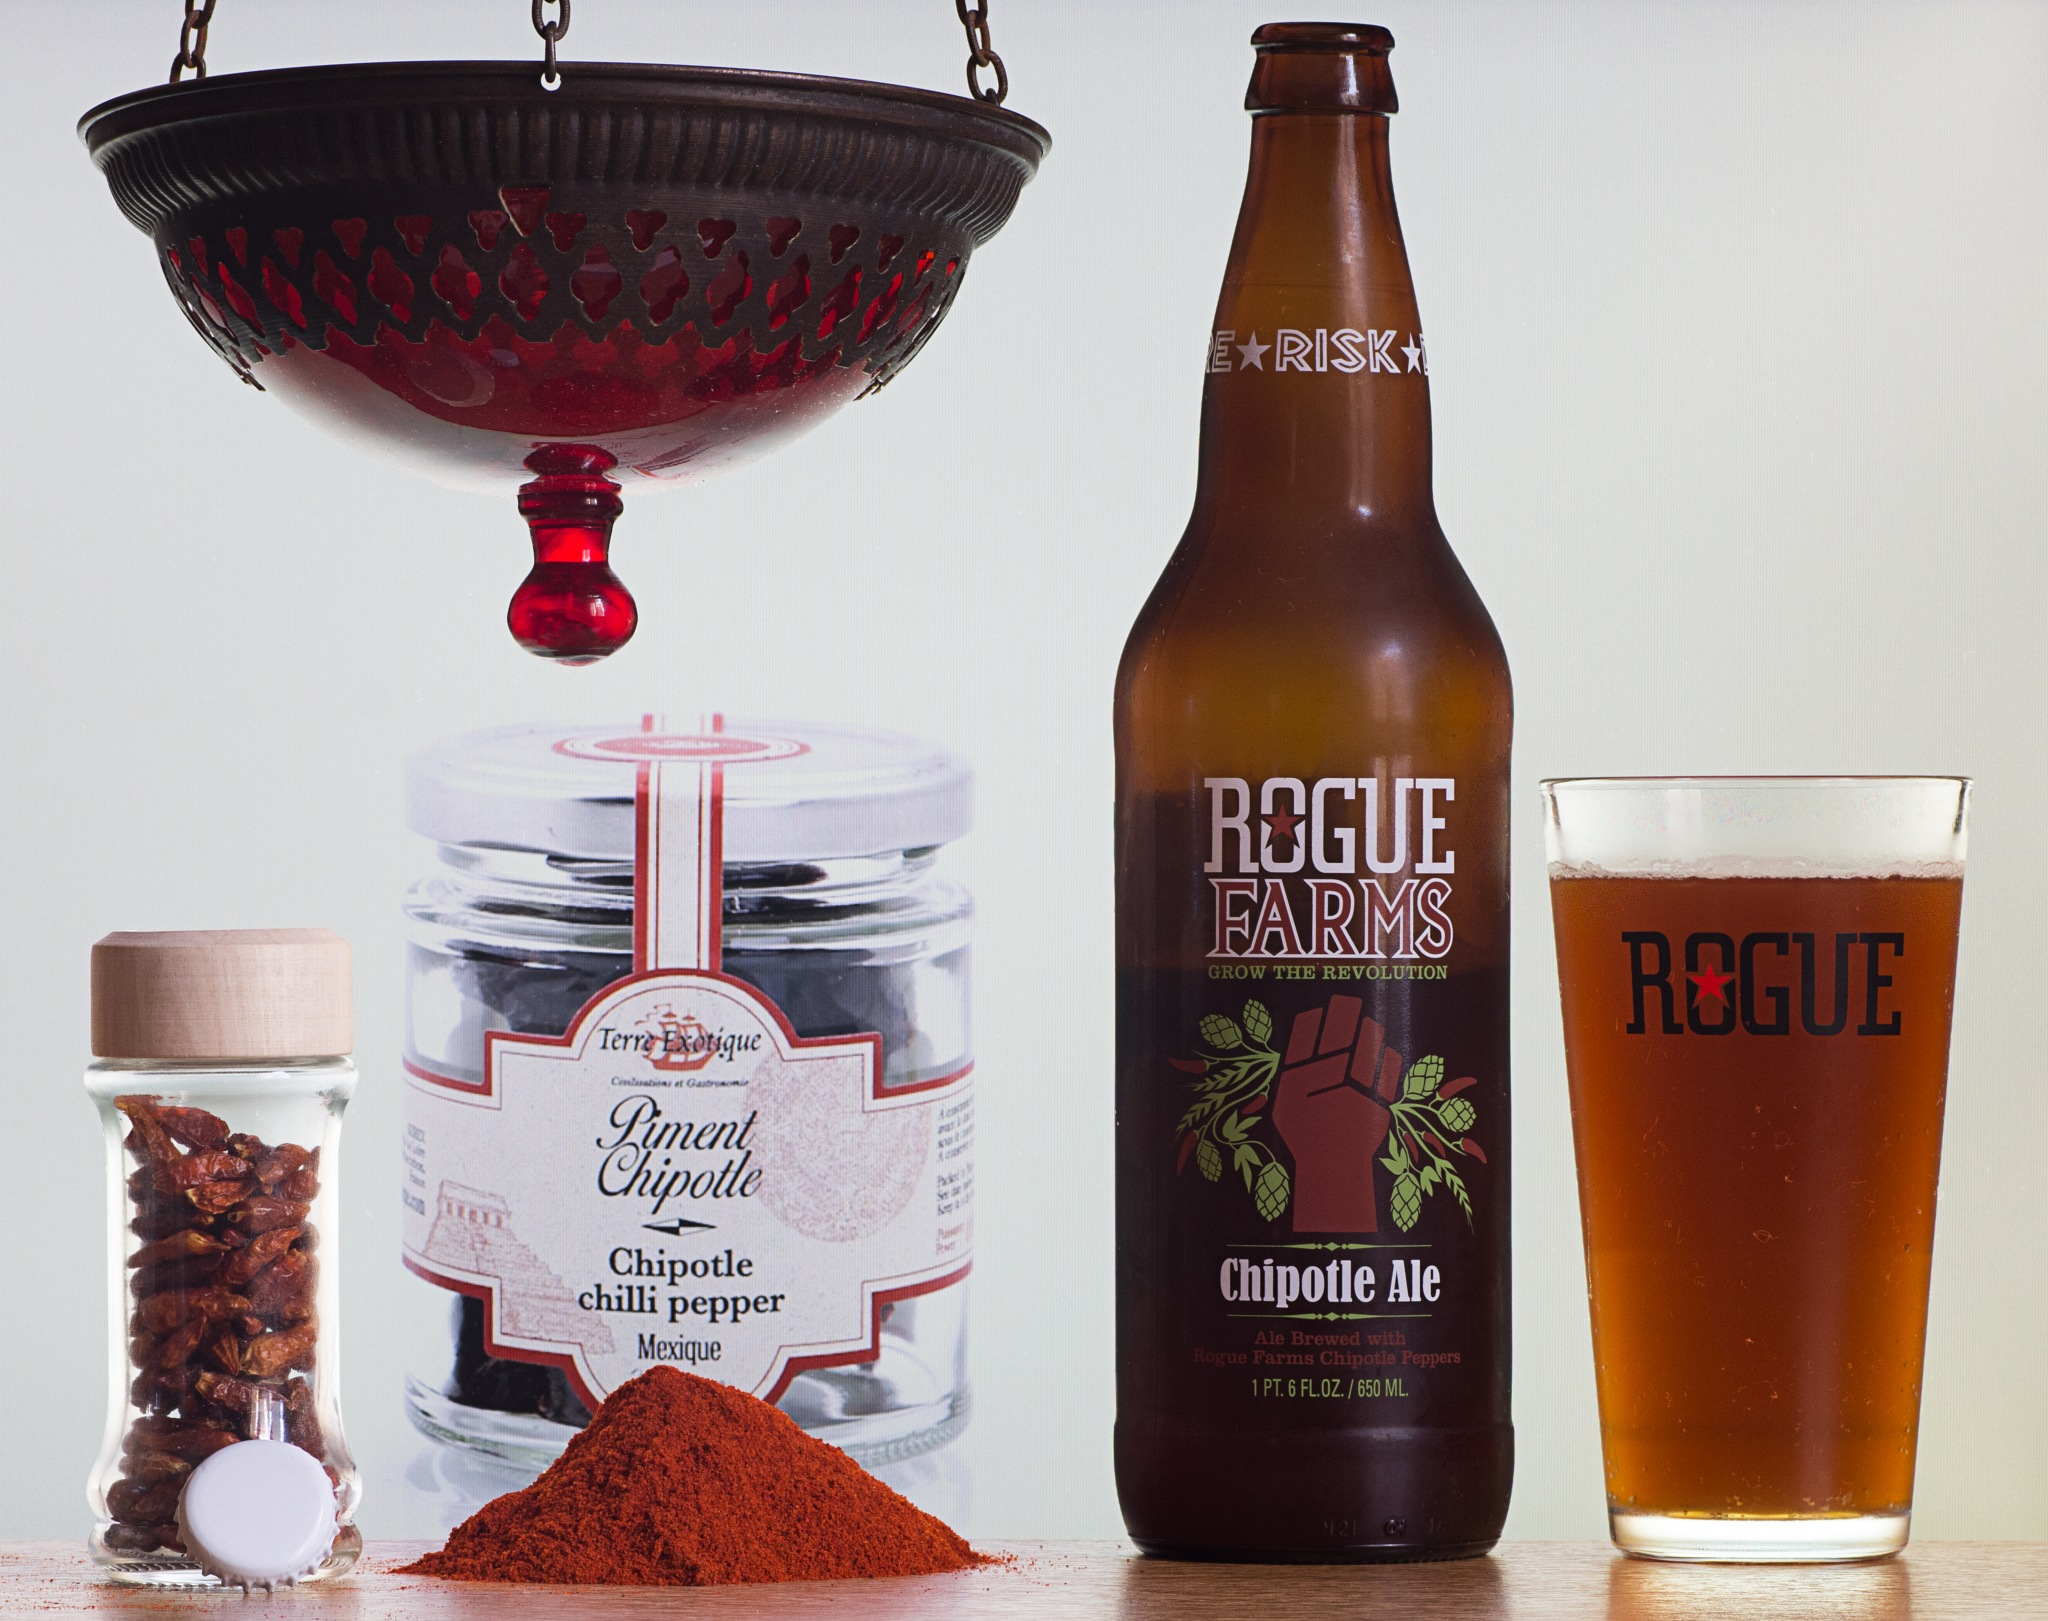 Rogue Farms Chipotle Ale by Franck Rouanet